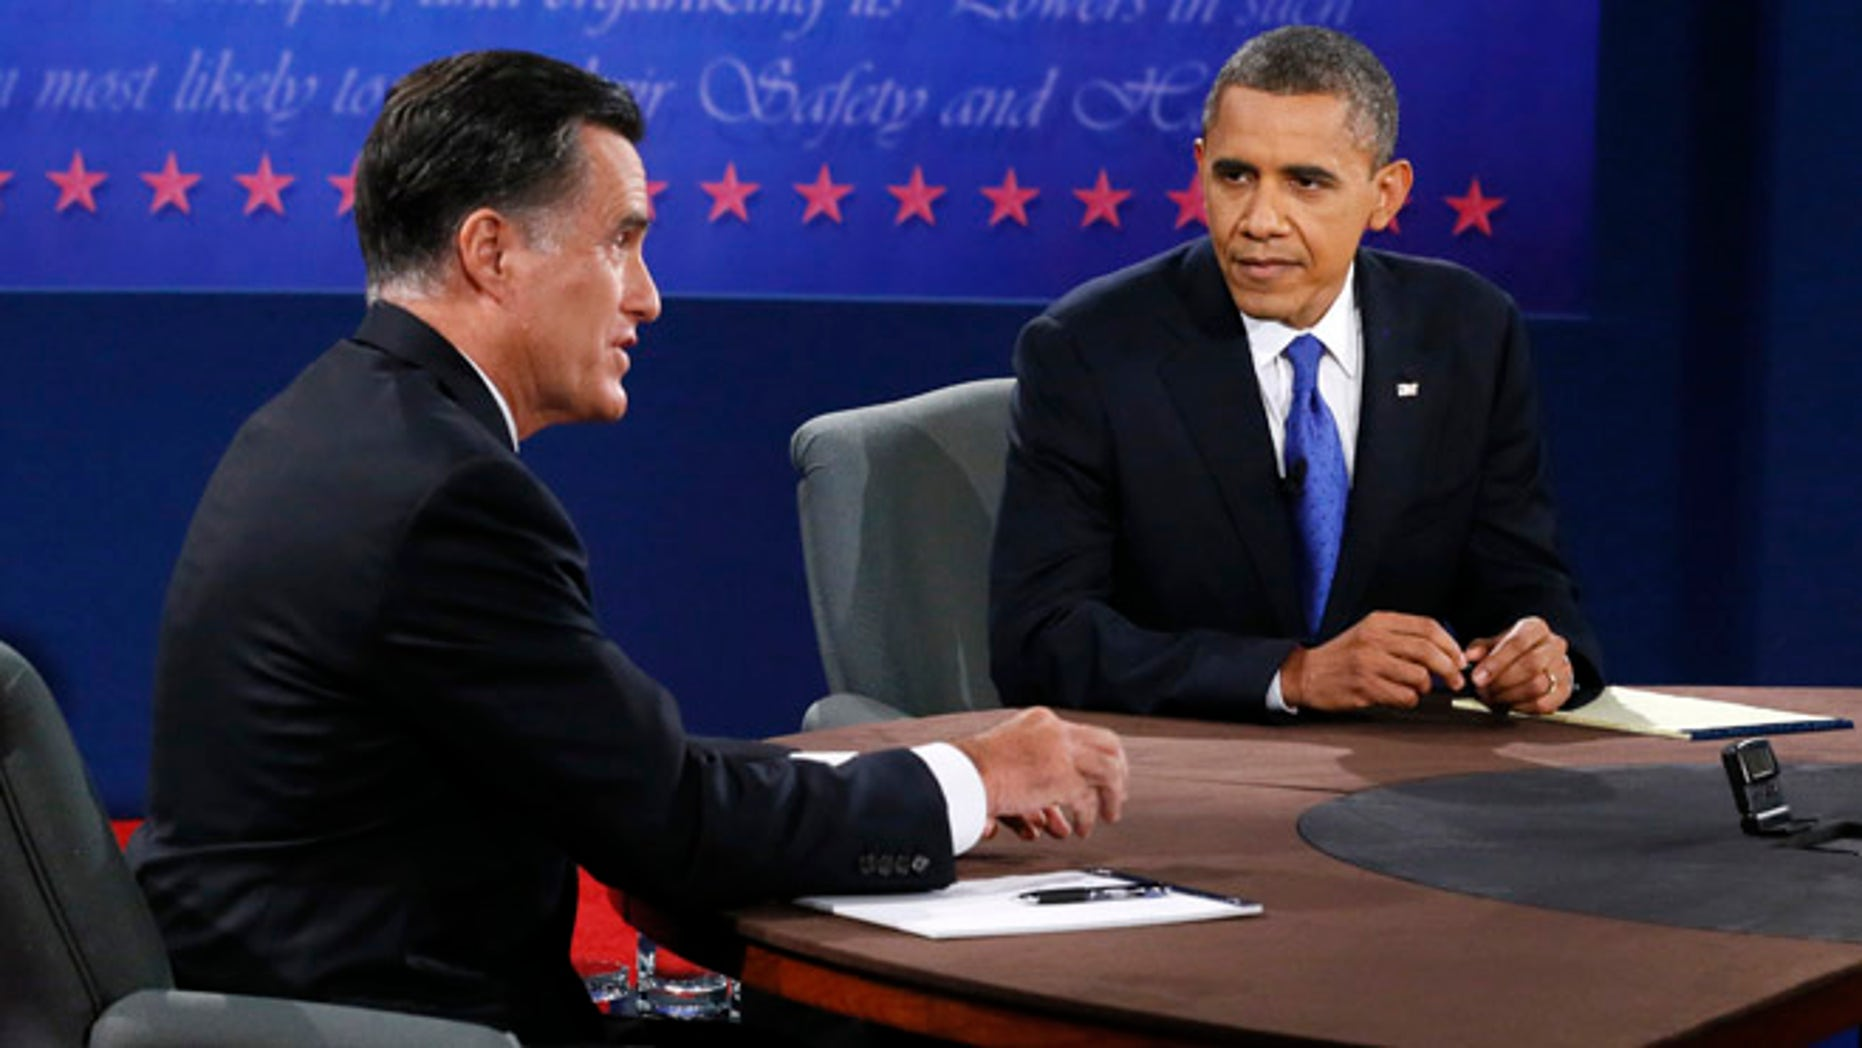 Oct. 22, 2012: President Barack Obama listens as Republican presidential nominee Mitt Romney speaks during the third presidential debate.